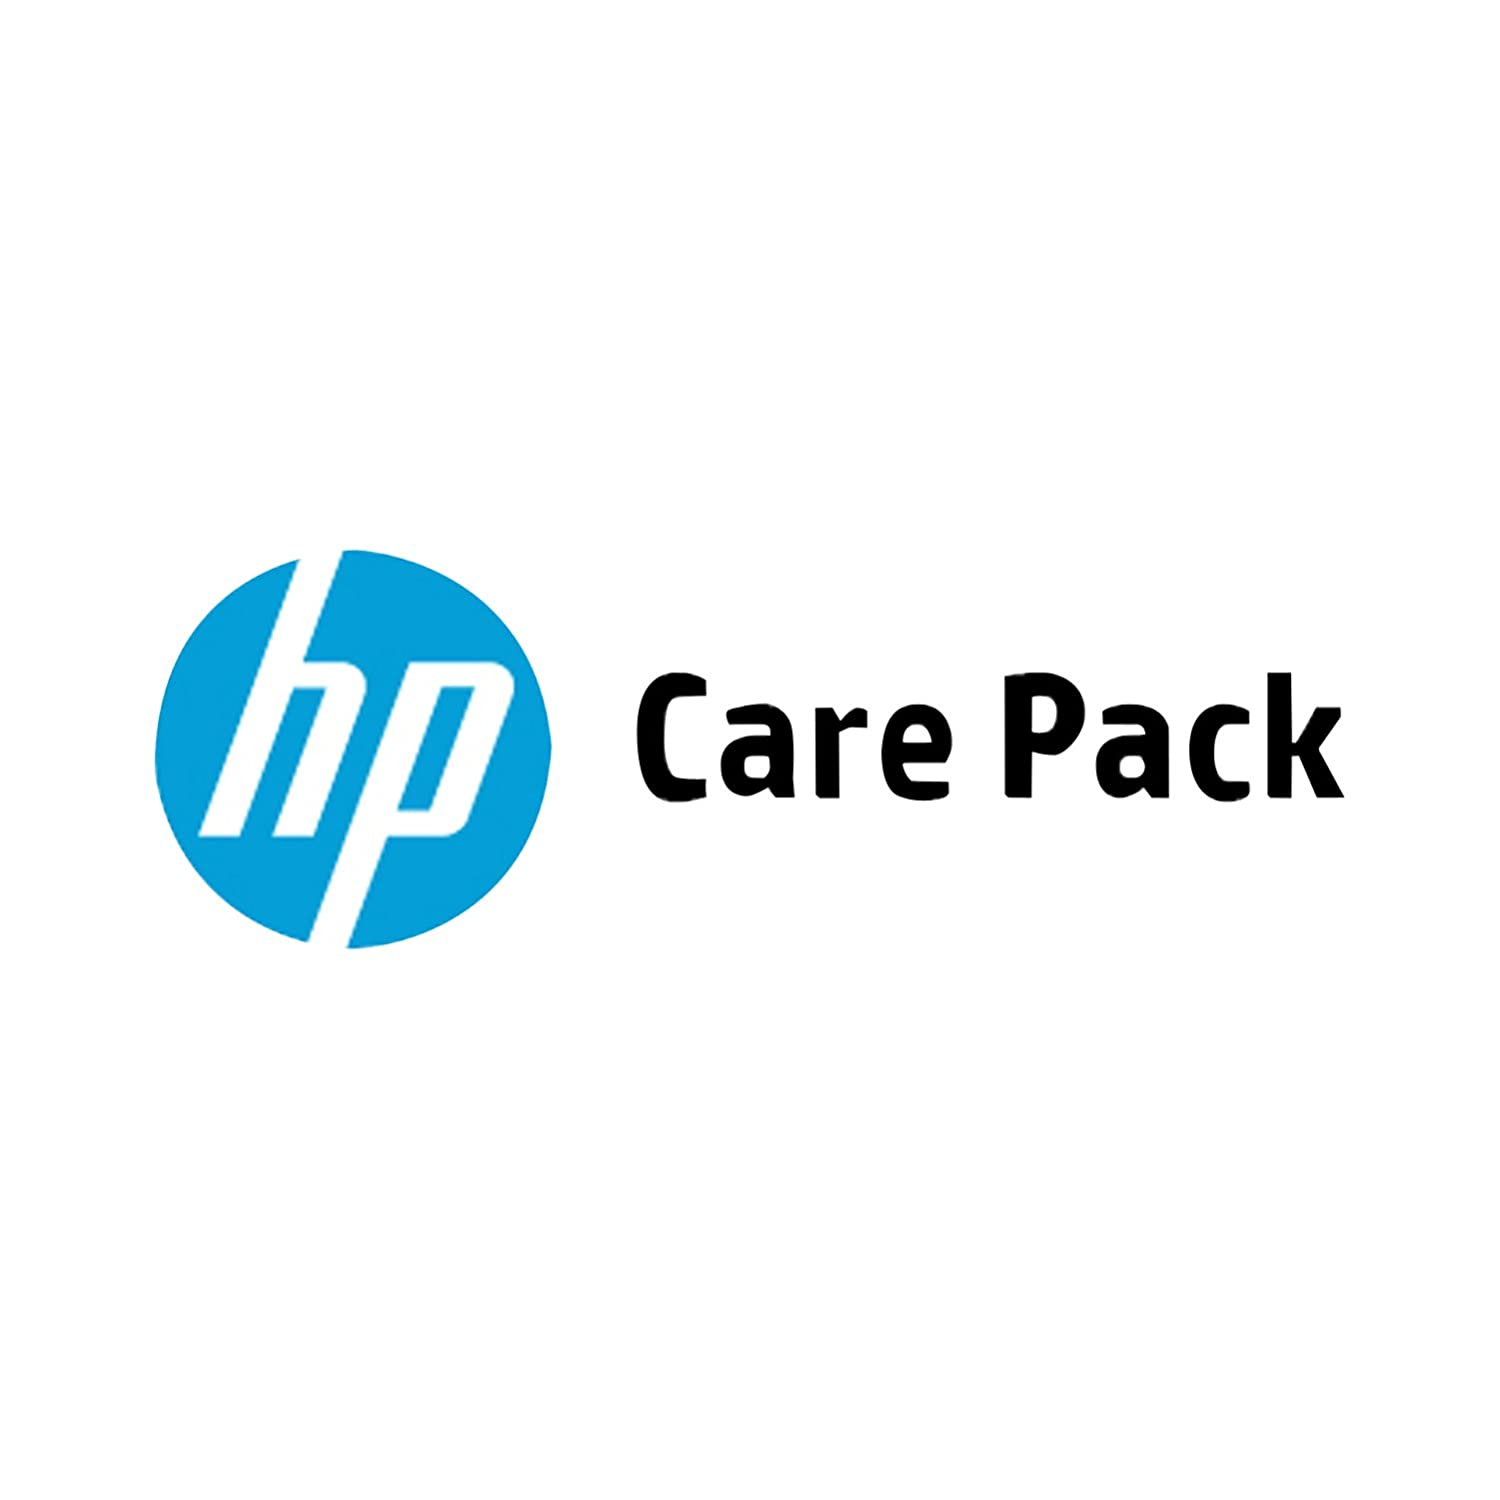 HP 3 year Next Business Day w/Defective Media Retention Service for PageWide Pro 774 MFP